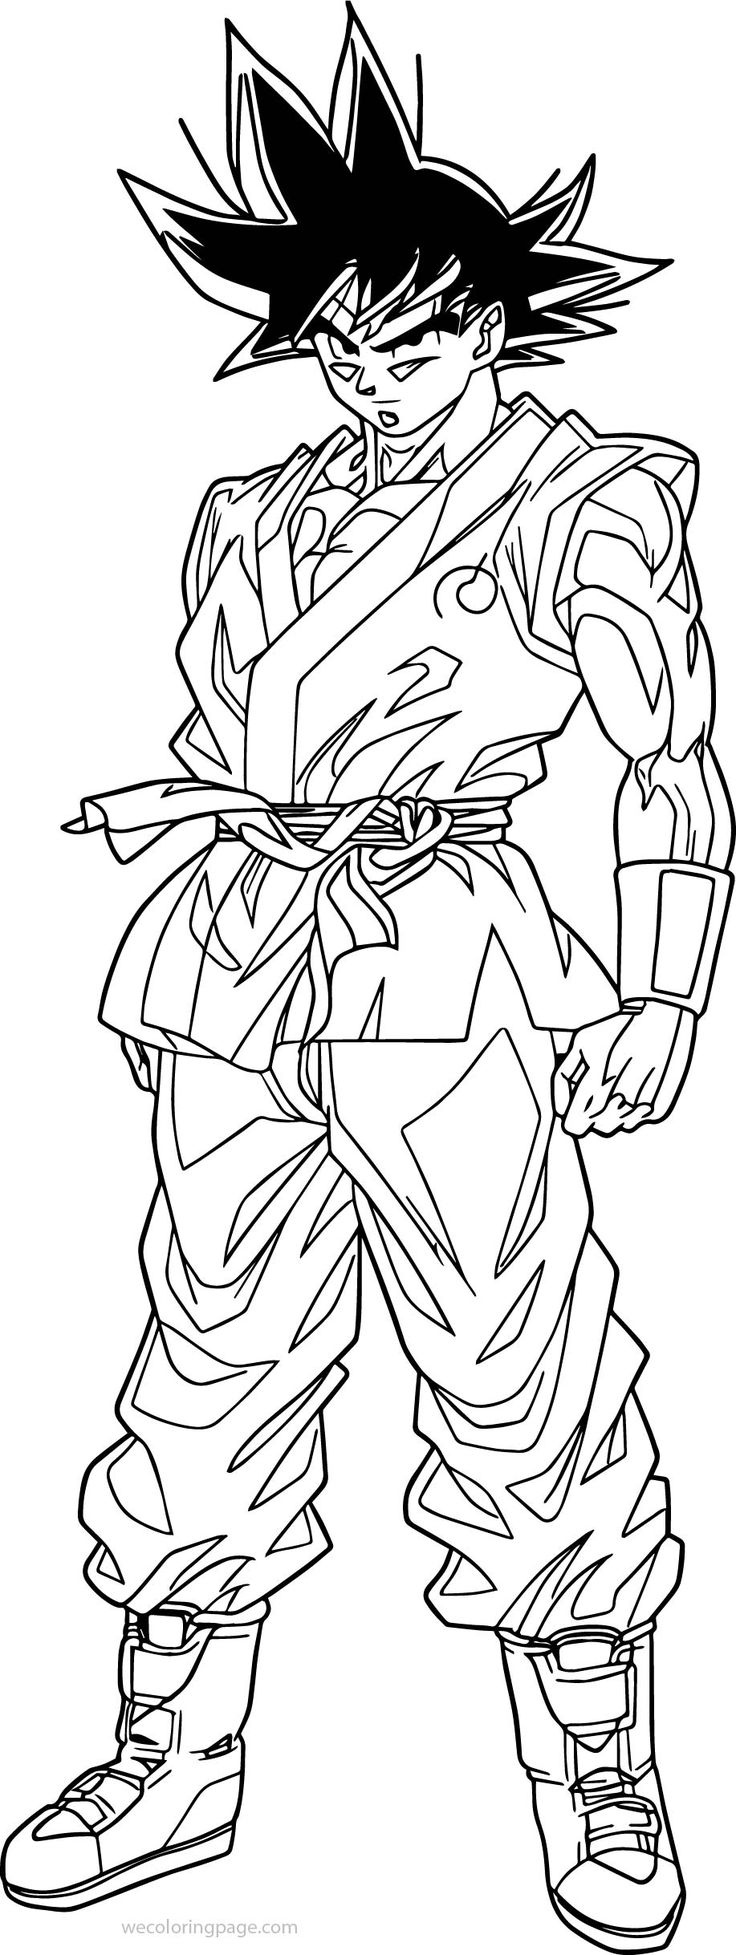 coloring pictures of goku goku ssj by wladyb91 on deviantart coloring goku of pictures